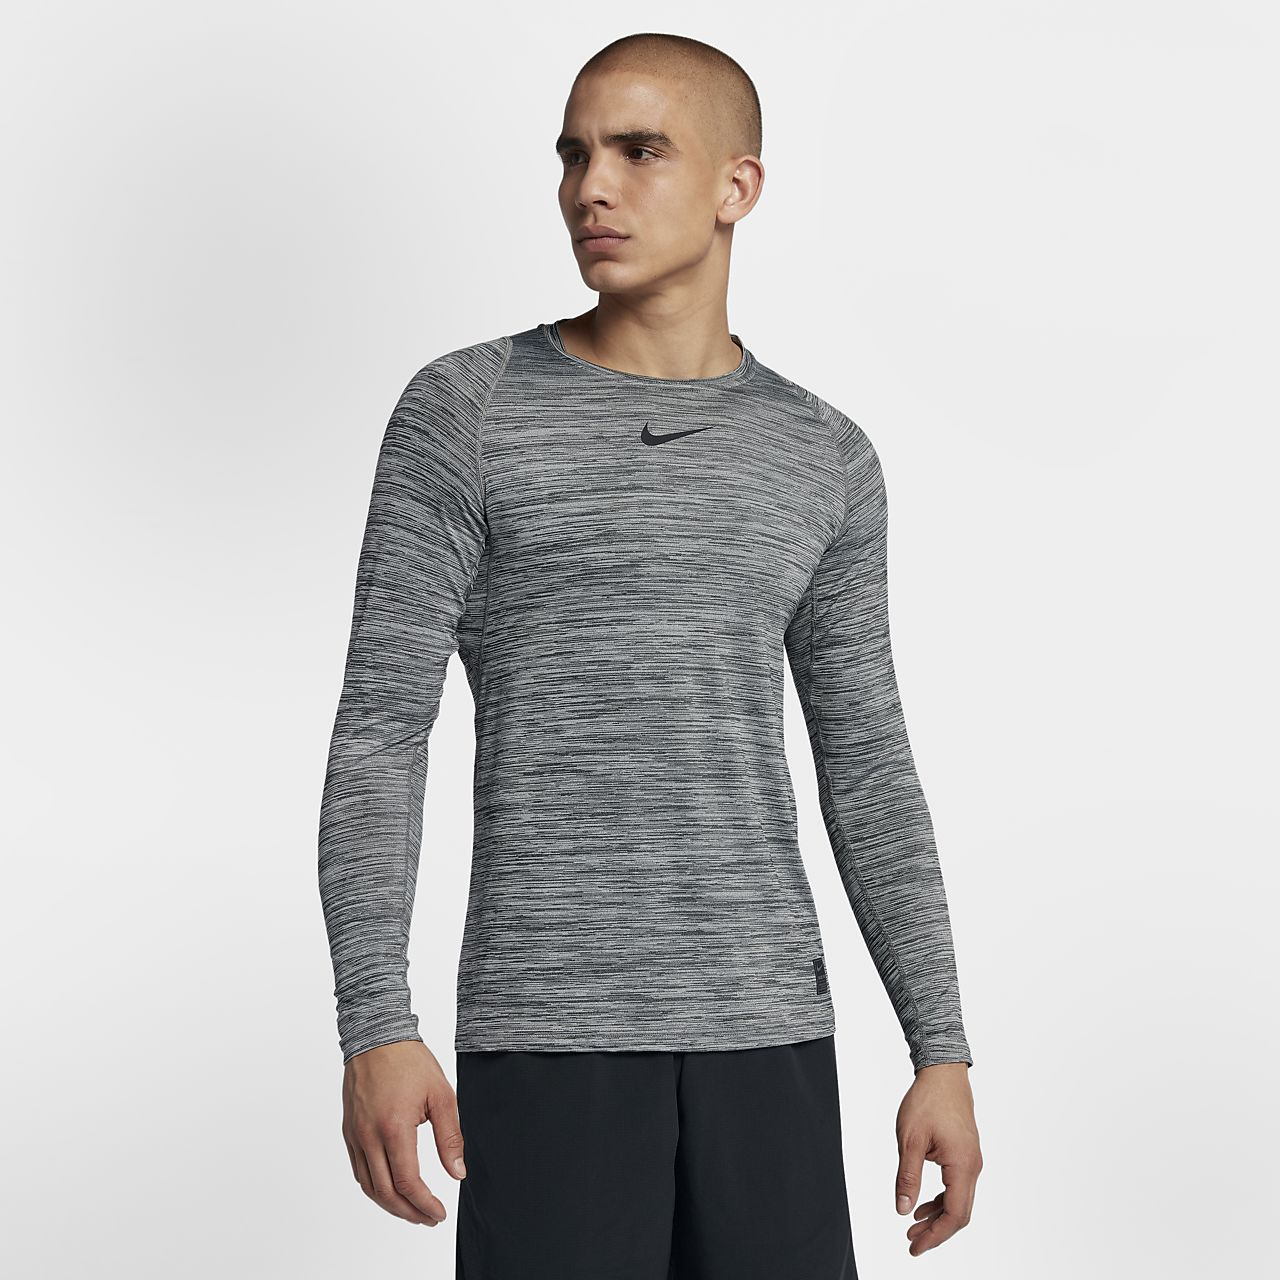 9ab2c99da Nike Pro Fitted Men's Long Sleeve Training Top. Nike.com